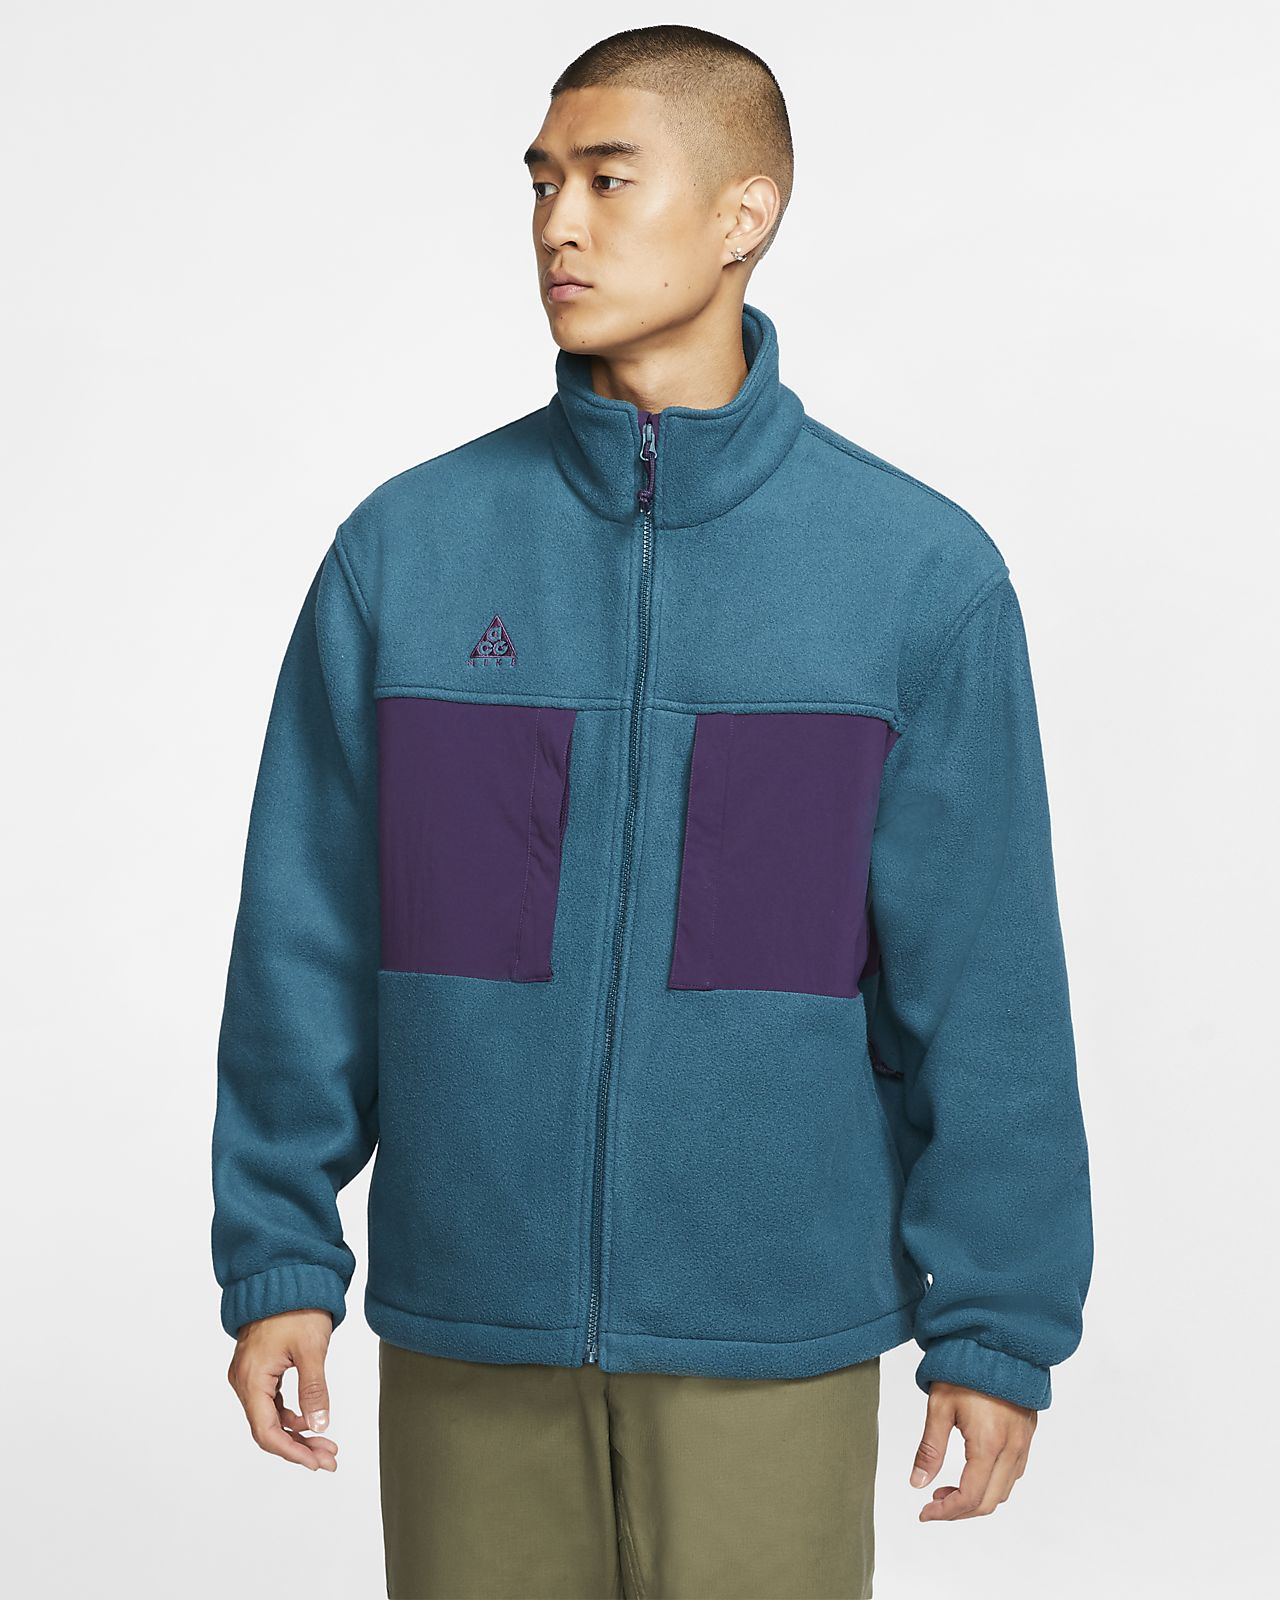 Nike ACG Fleece Jacket